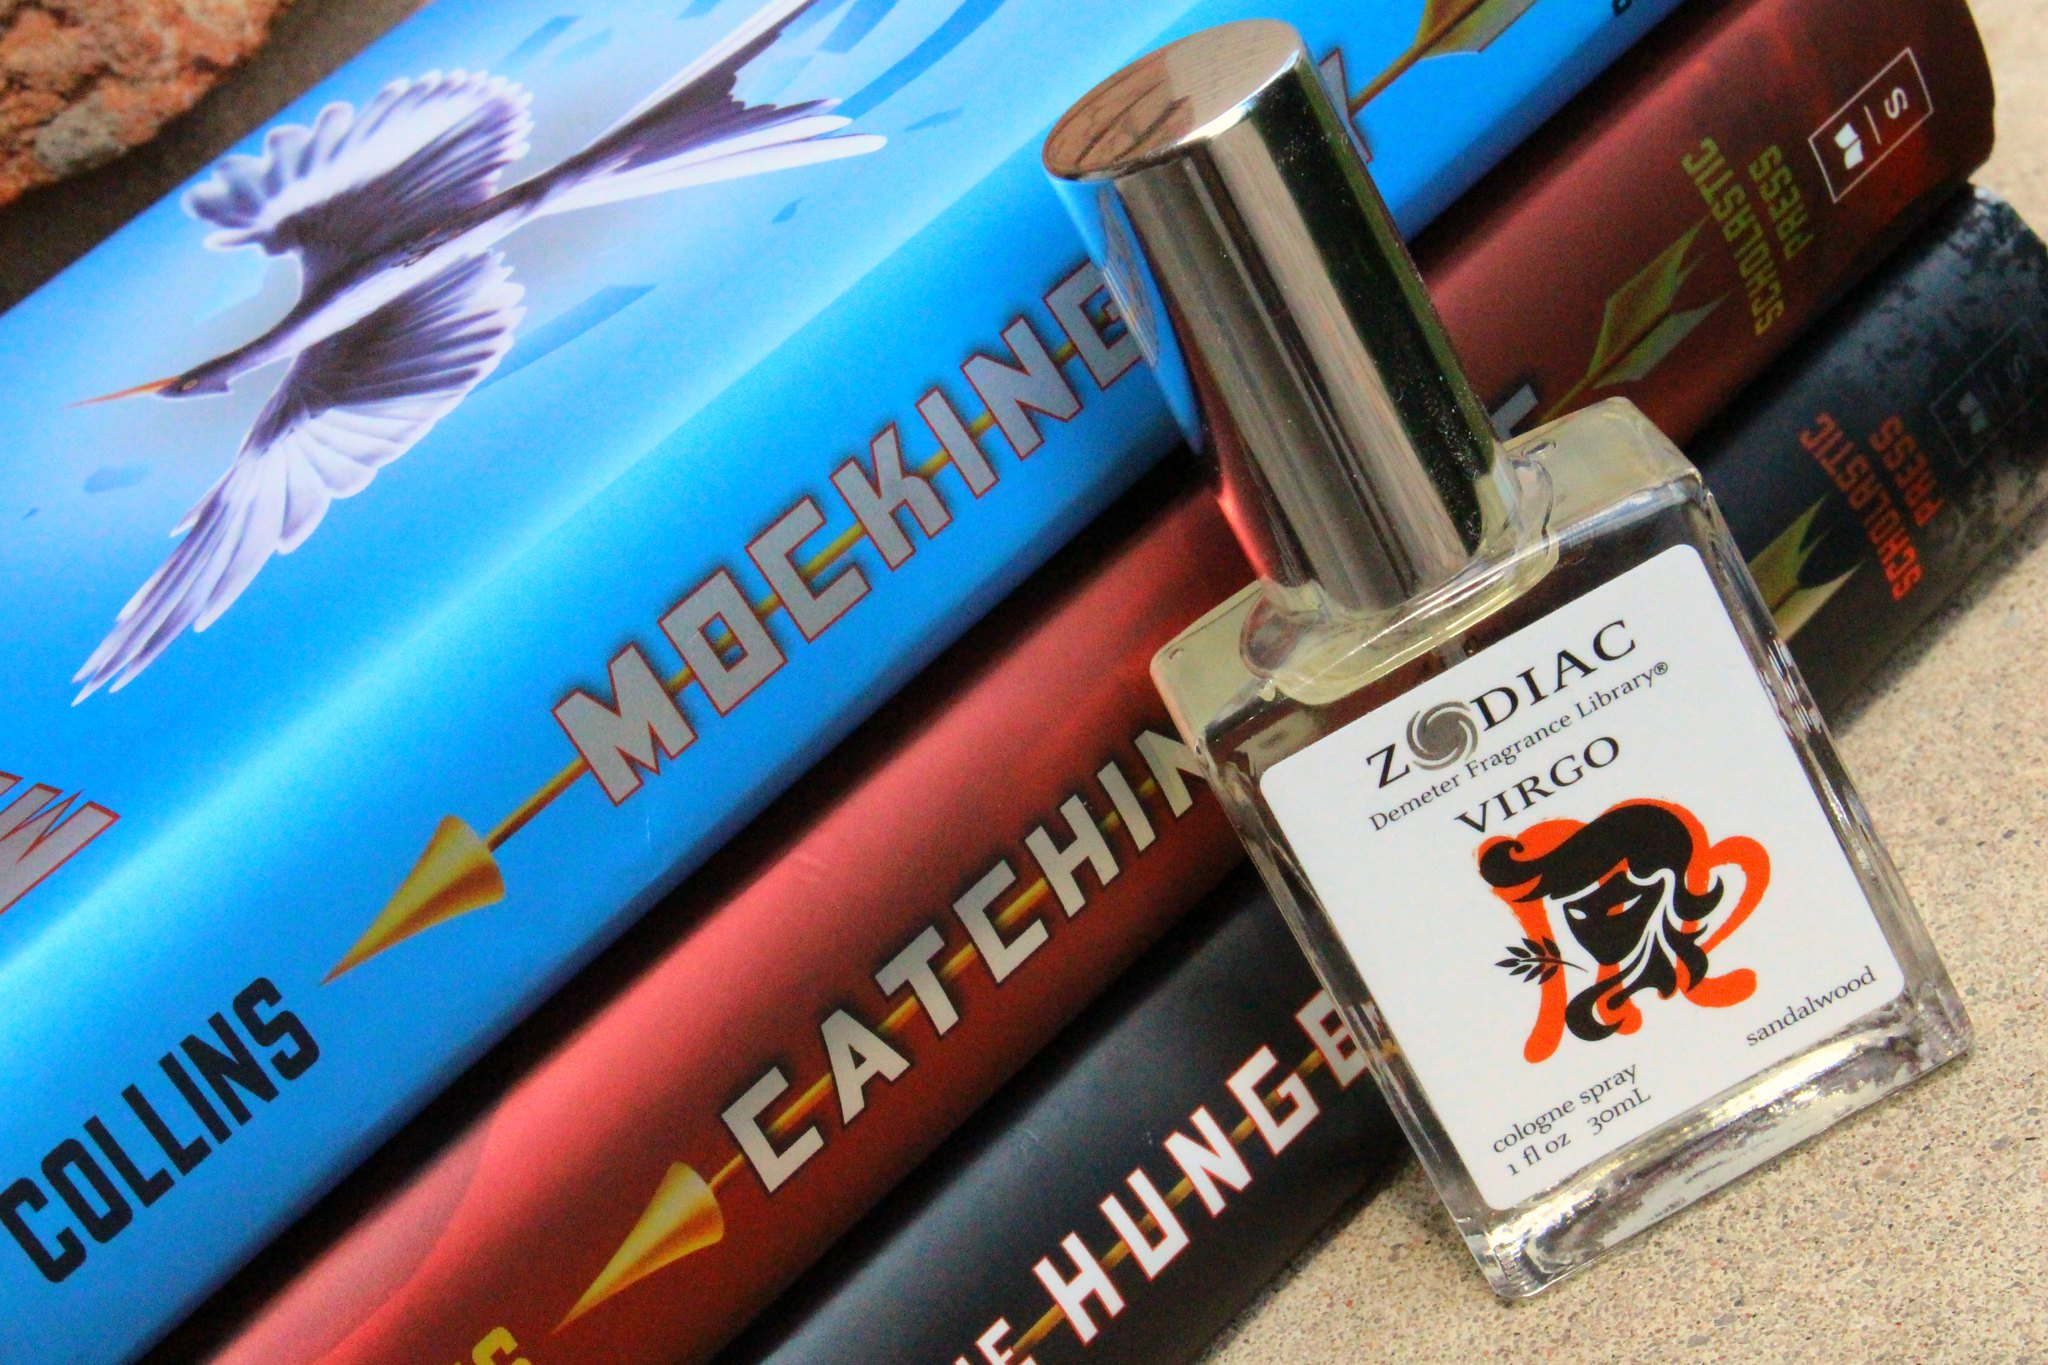 Demeter Fragrance Library Virgo Sandalwood